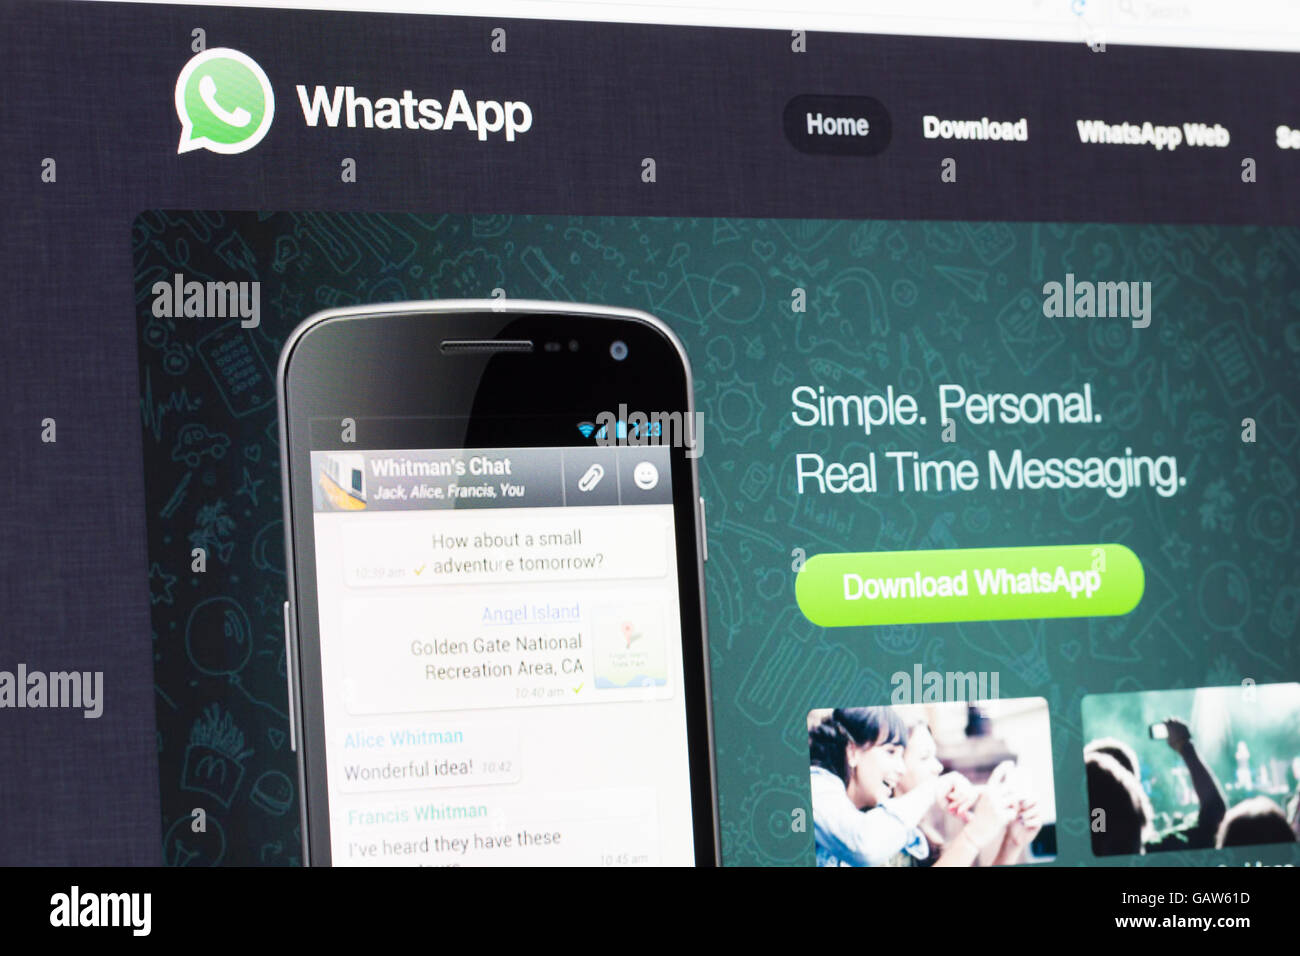 Whatsapp Screen Stock Photos & Whatsapp Screen Stock Images